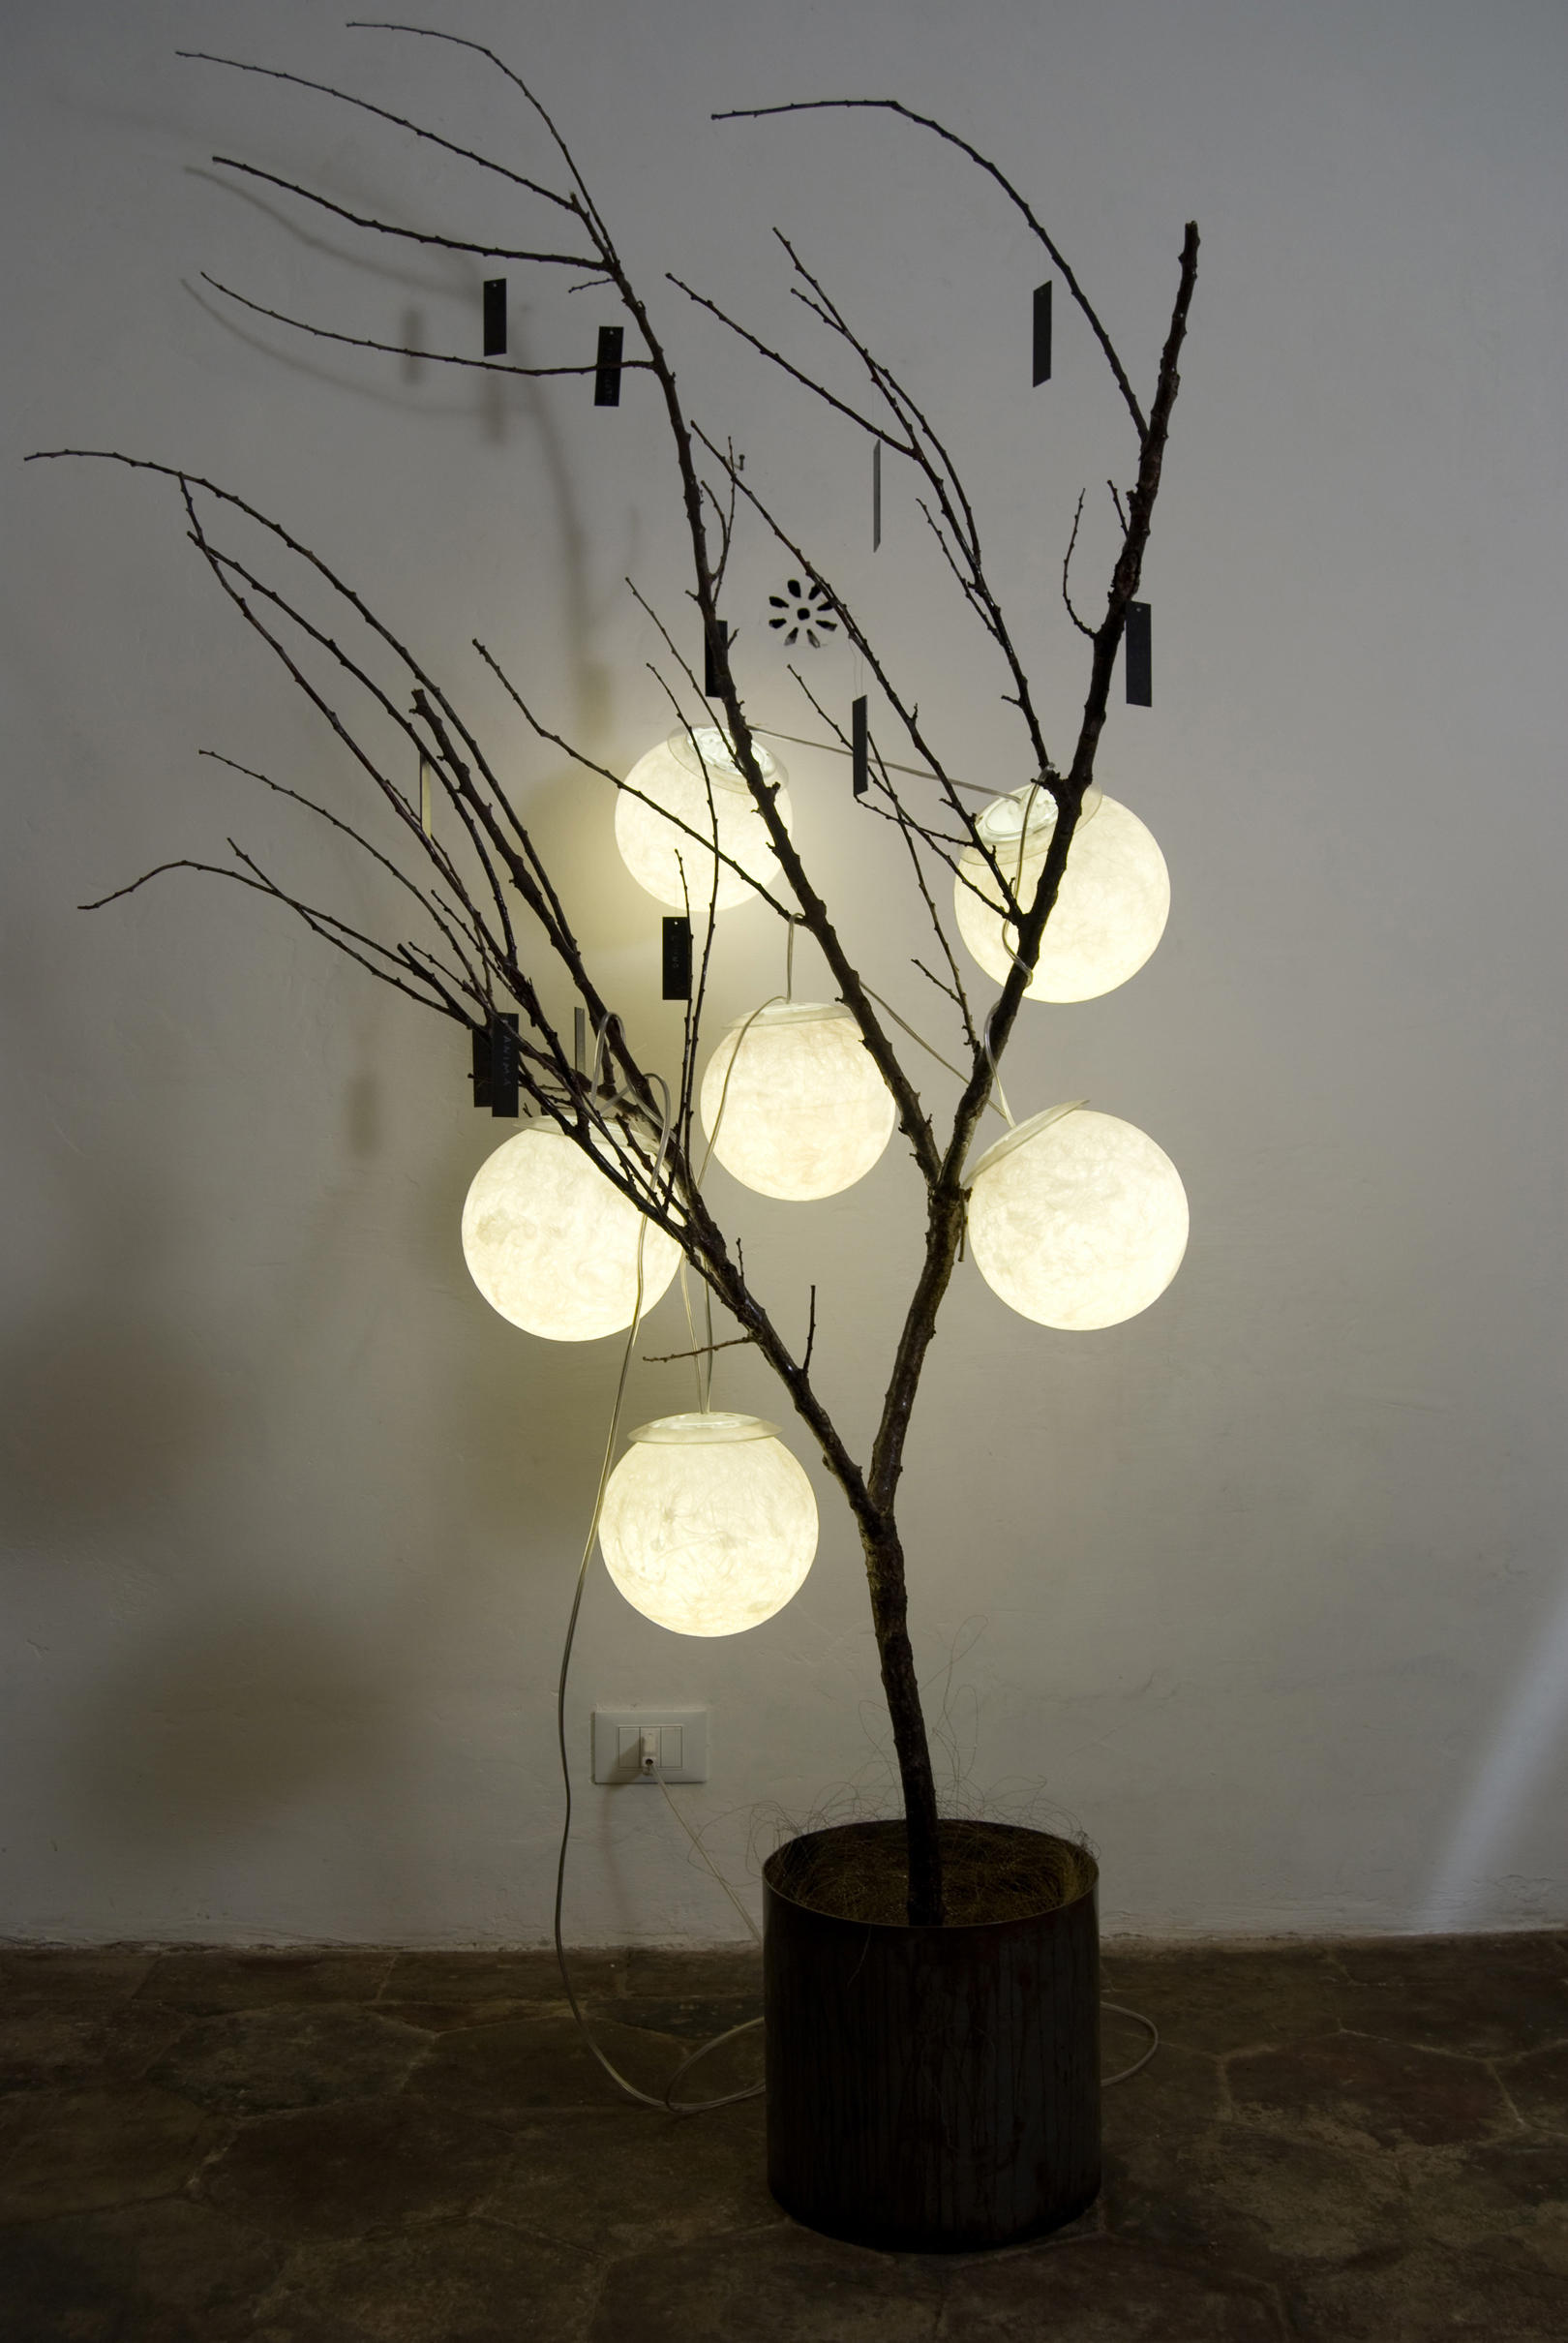 Tree of life floor lamp general lighting from in estdesign tree of life floor lamp by in es aloadofball Images